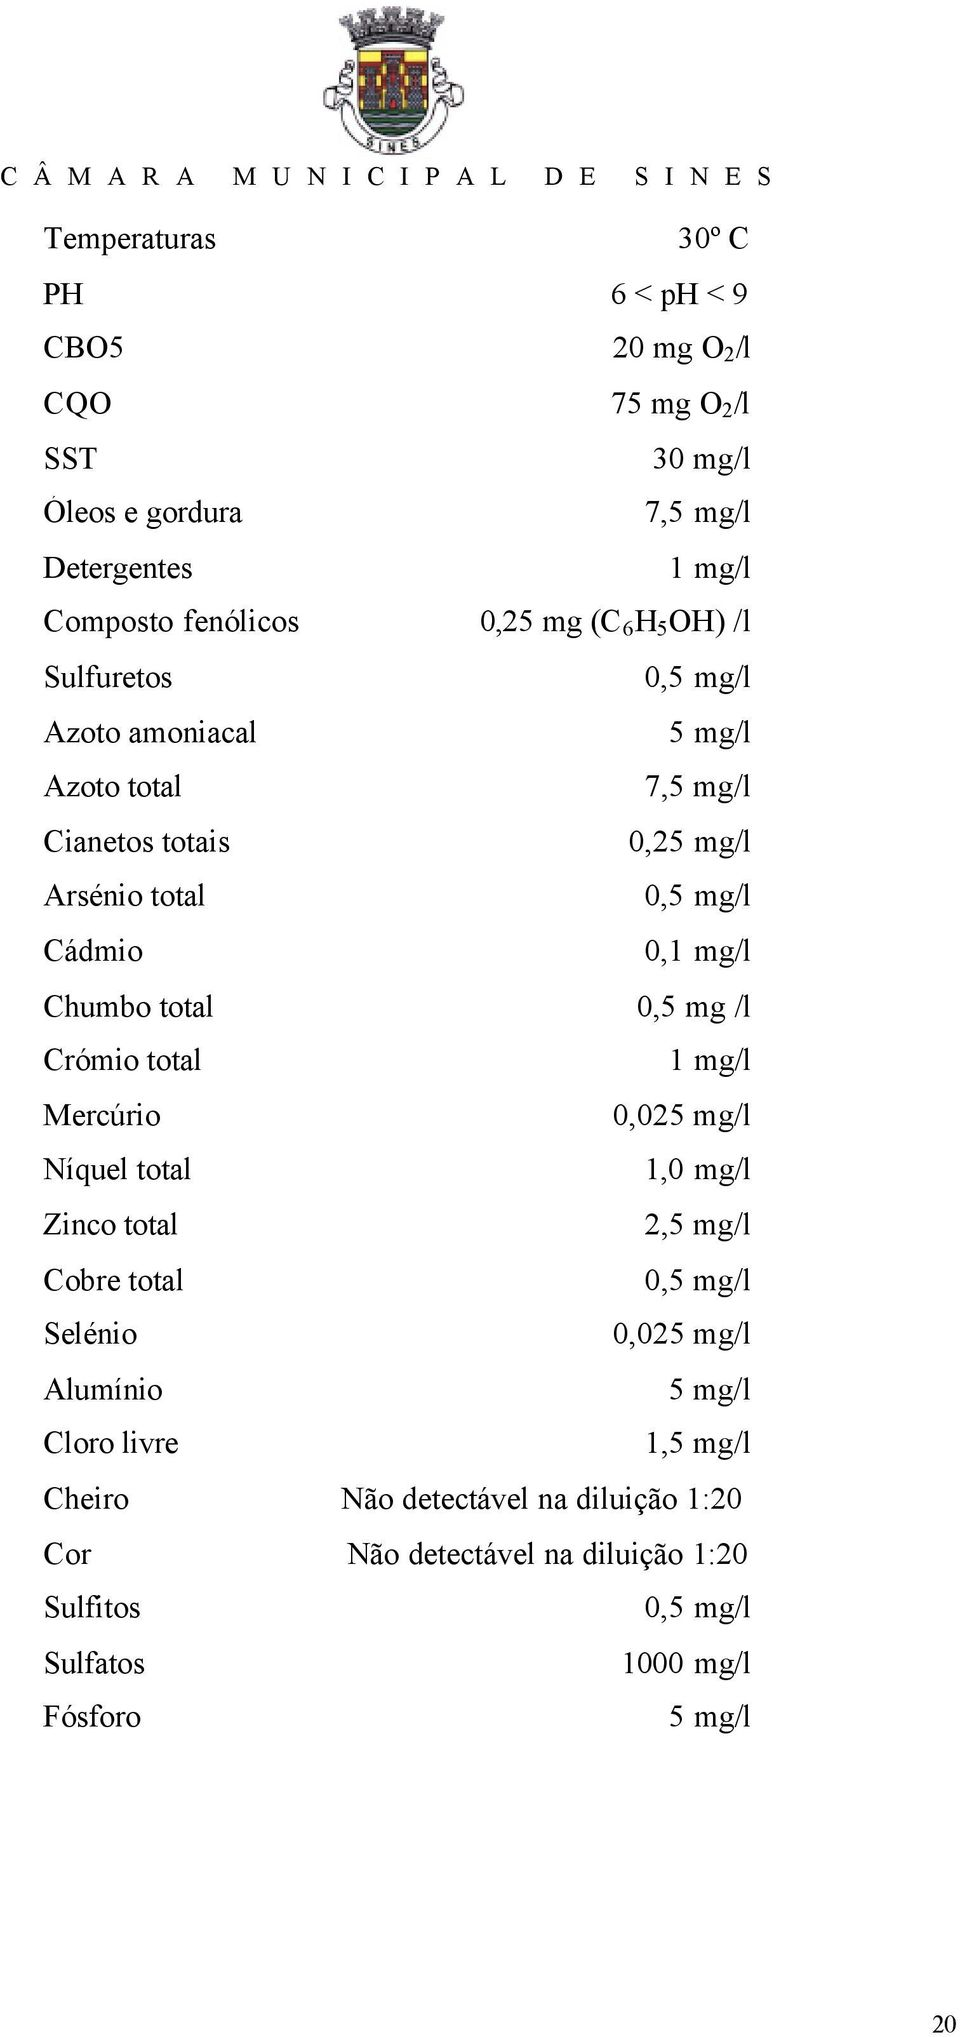 total 0,5 mg /l Crómio total 1 mg/l Mercúrio 0,025 mg/l Níquel total 1,0 mg/l Zinco total 2,5 mg/l Cobre total 0,5 mg/l Selénio 0,025 mg/l Alumínio 5